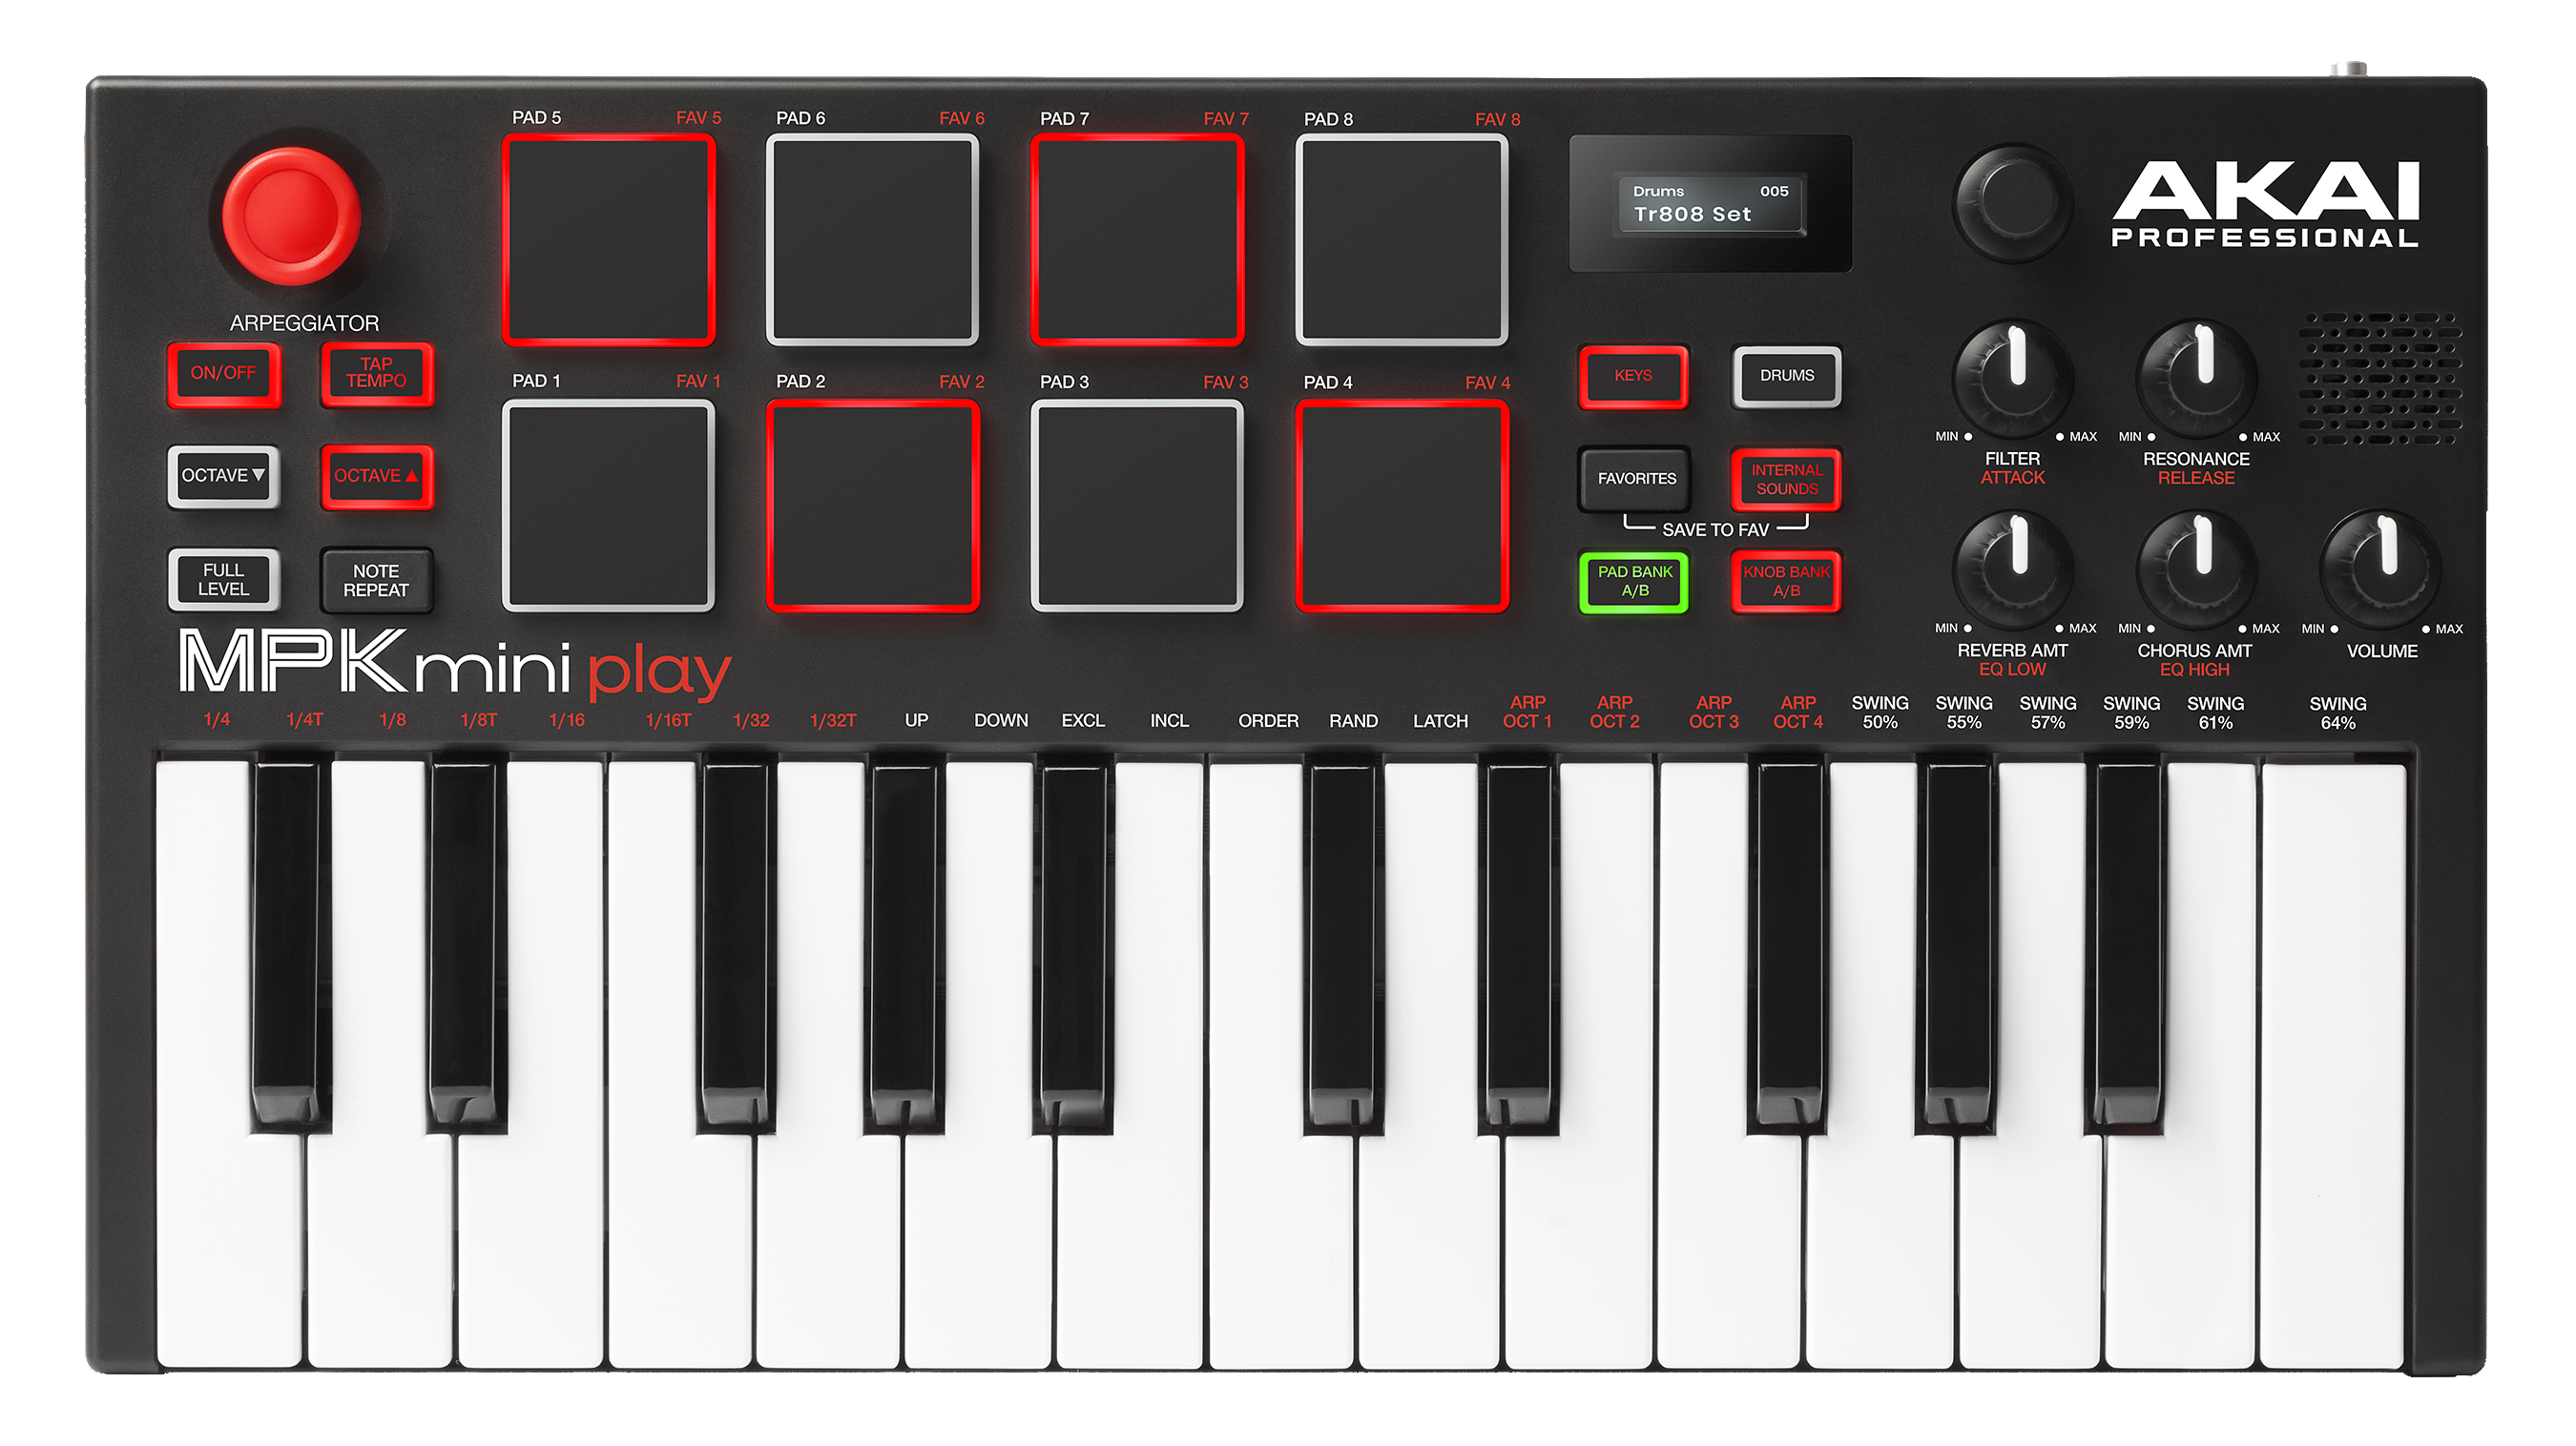 Akai Pro MPK mini Play - Frequently Asked Questions | Akai